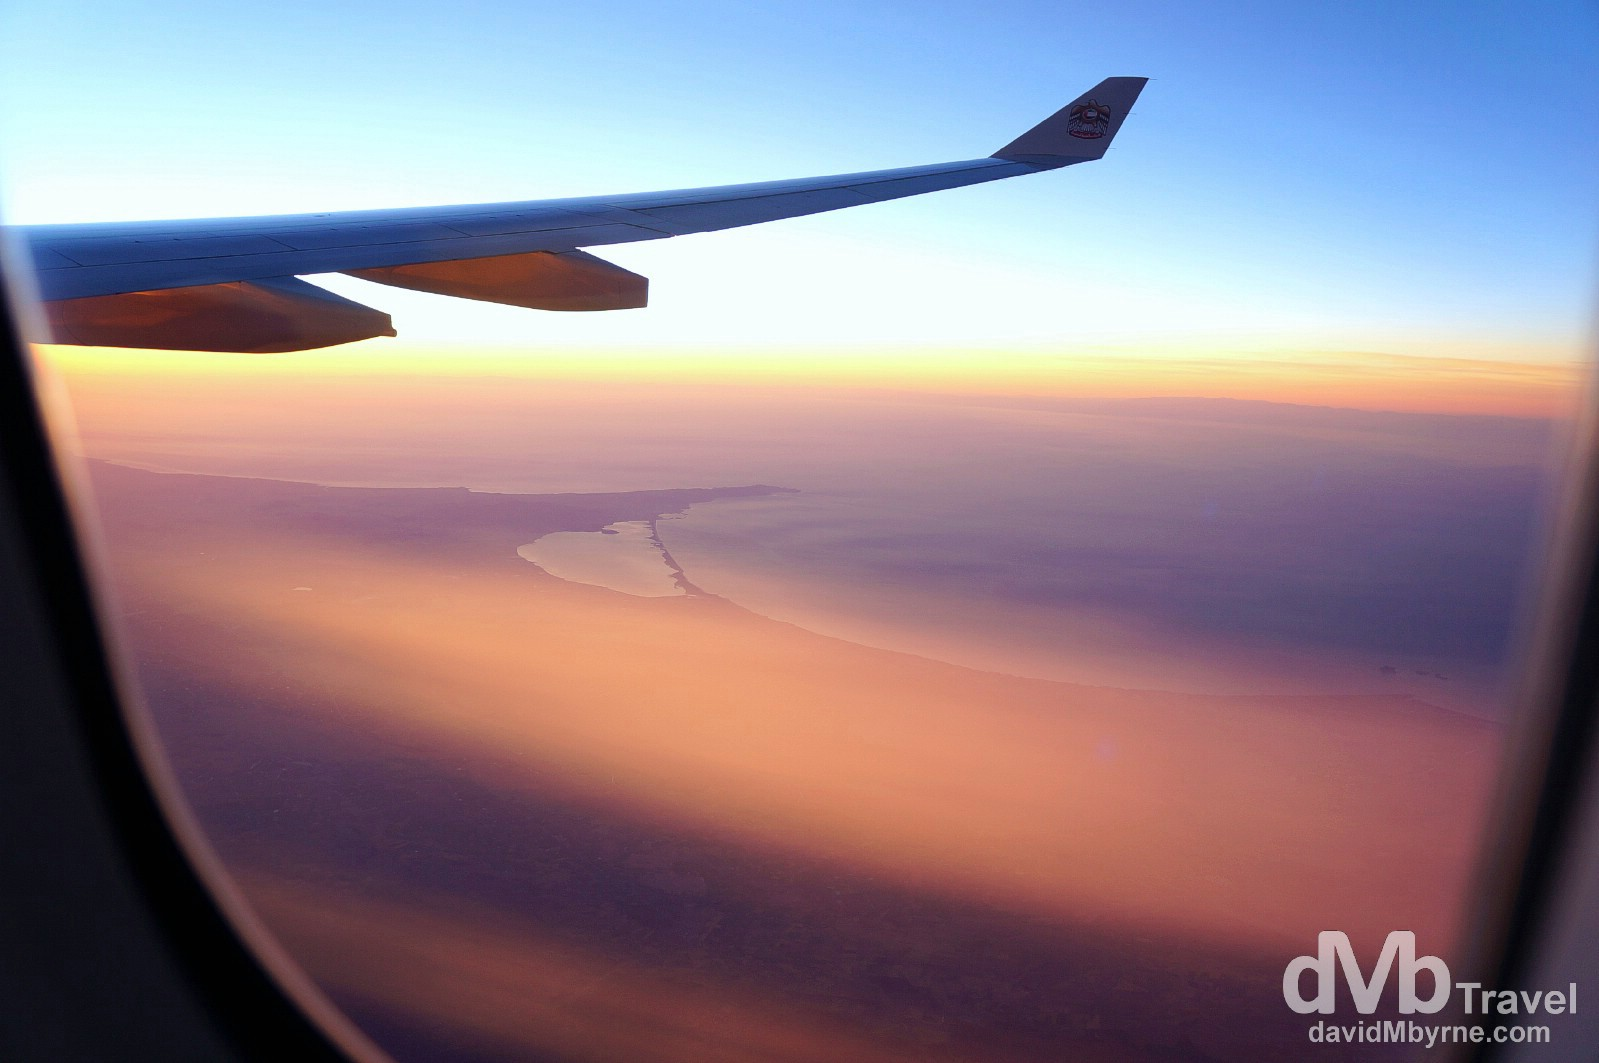 A section of the Moroccan Mediterranean coastline as seen from Etihad Airways flight 611 en route from Abu Dhabi, UAE, to Casablanca, Morocco. April 27th, 2014.